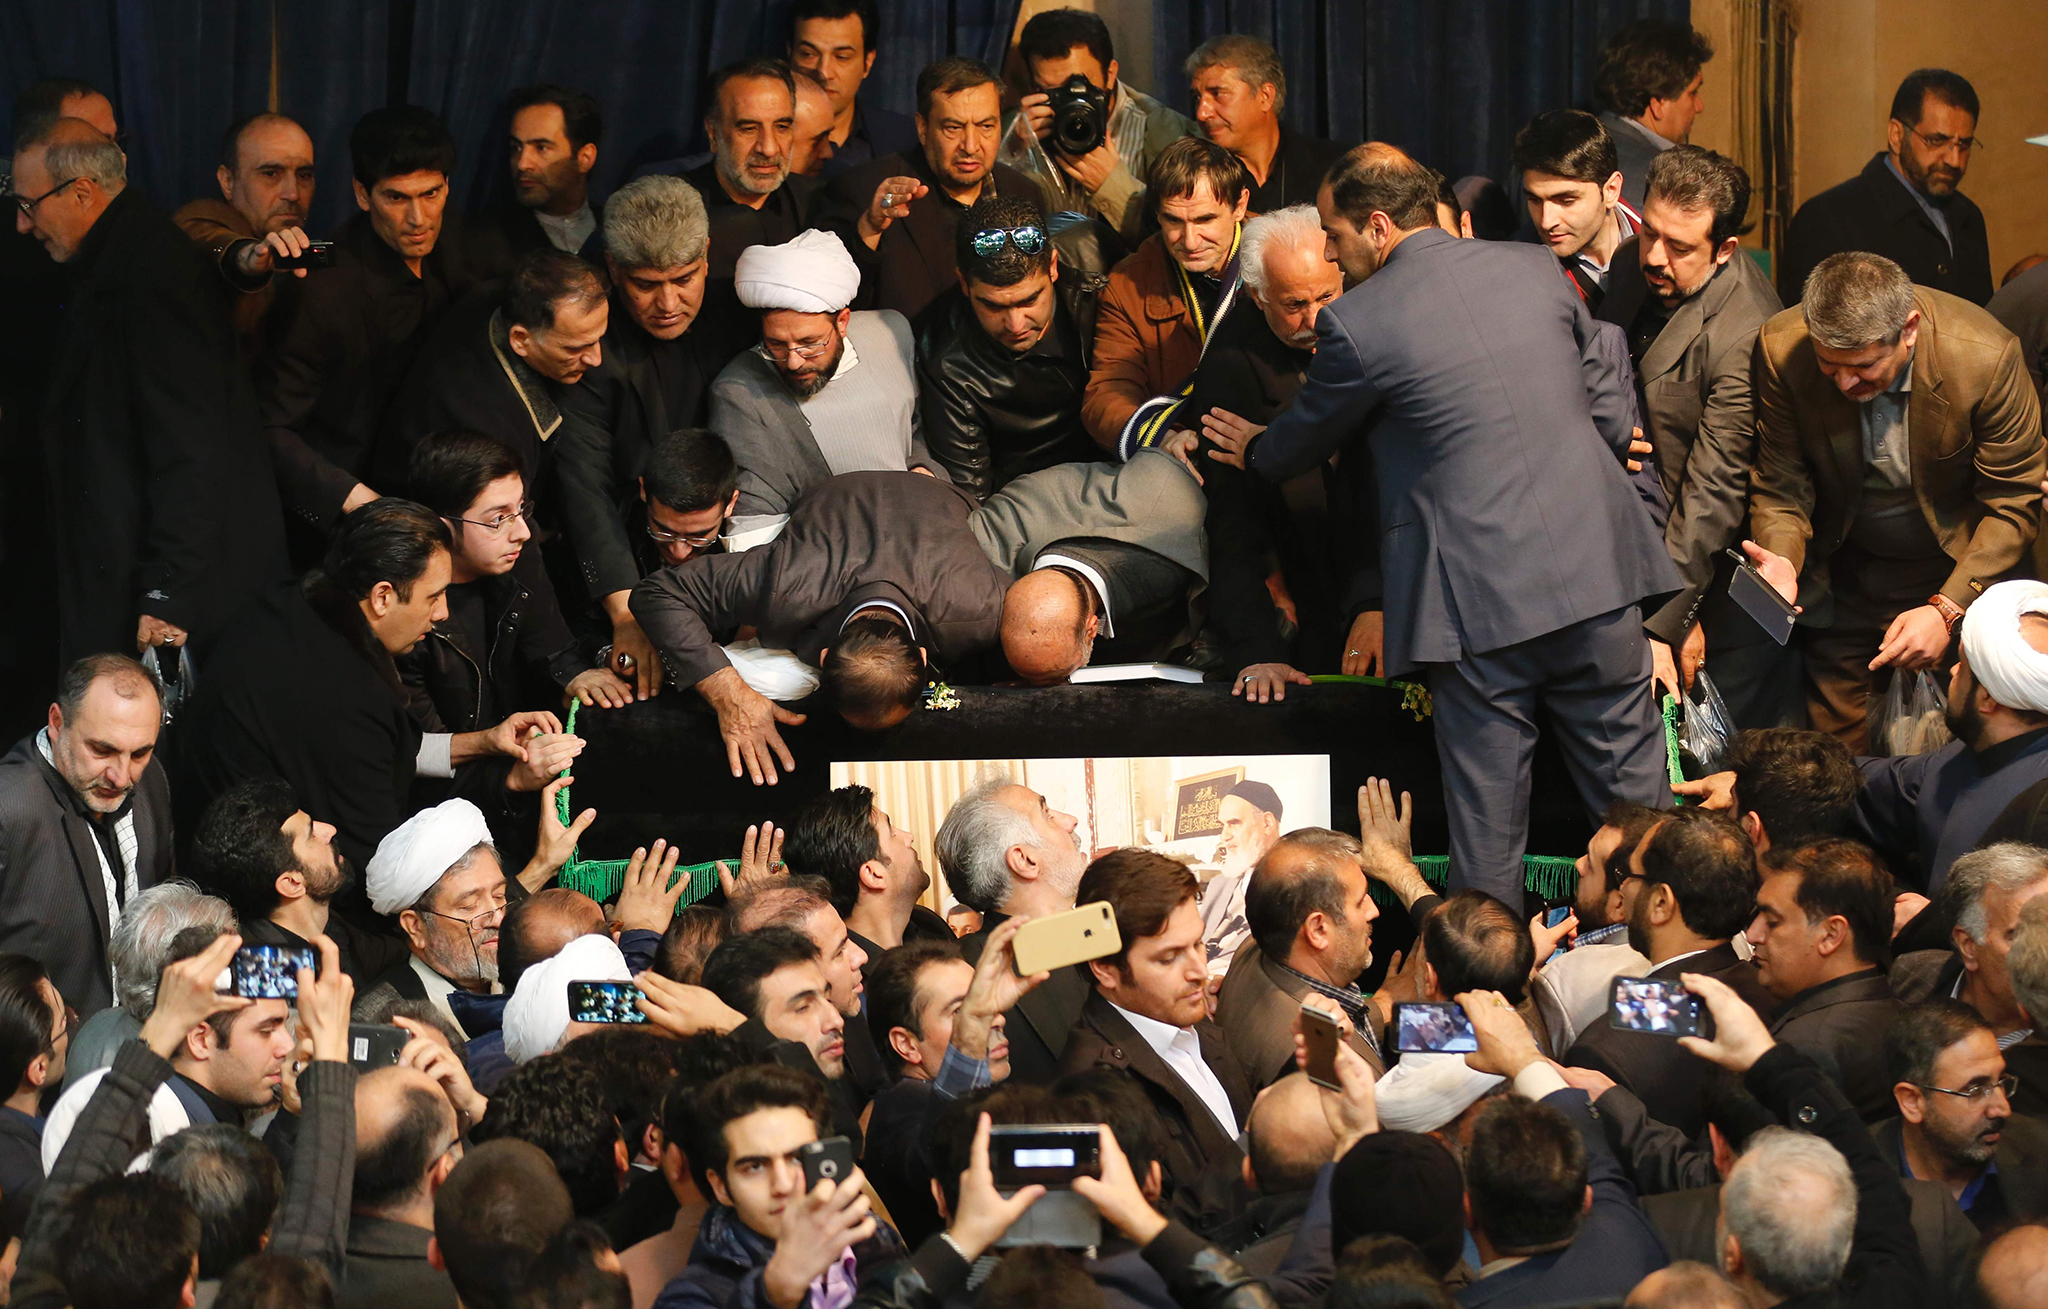 Mourners gather around the coffin of former Iranian president Akbar Hashemi Rafsanjani during a mourning ceremony at Jamaran mosque in Tehran, on January 9, 2017. Rafsanjani died in hospital on January 8 after suffering a heart attack. Rafsanjani, who was 82, was a pivotal figure in the foundation of the Islamic republic in 1979, and served as president from 1989 to 1997. / AFP PHOTO / ATTA KENAREATTA KENARE/AFP/Getty Images